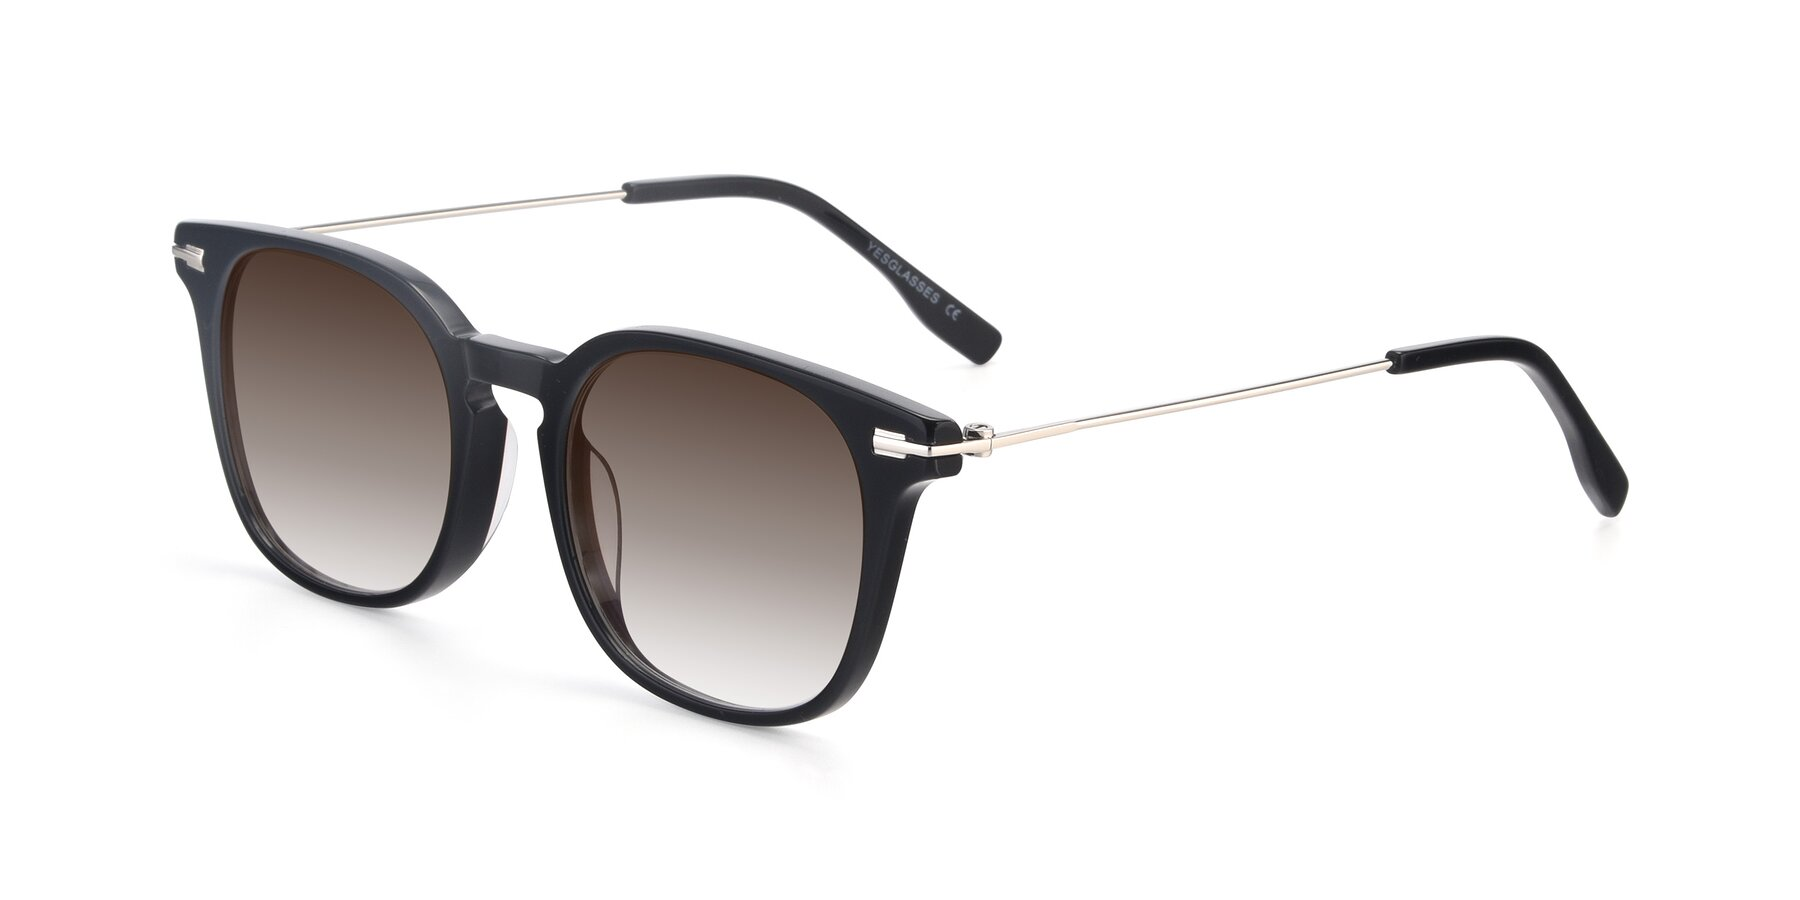 Angle of 17711 in Black with Brown Gradient Lenses